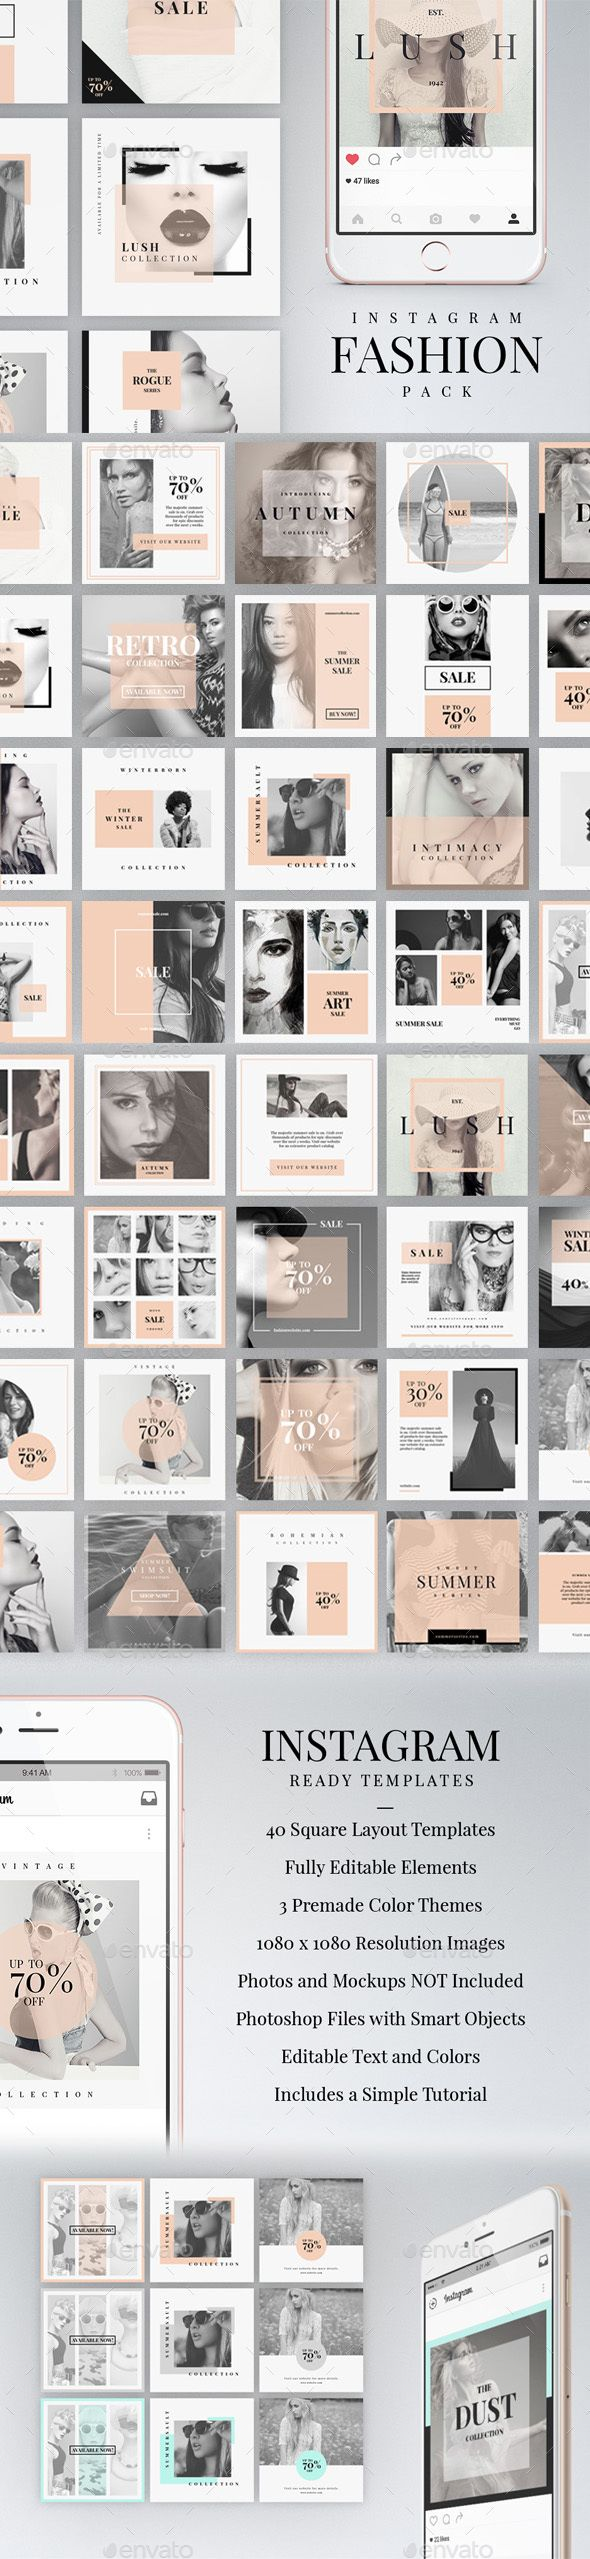 FASHION BANNERS : Instagram Fashion Pack  — PSD Template #etsy #social media #presentation…